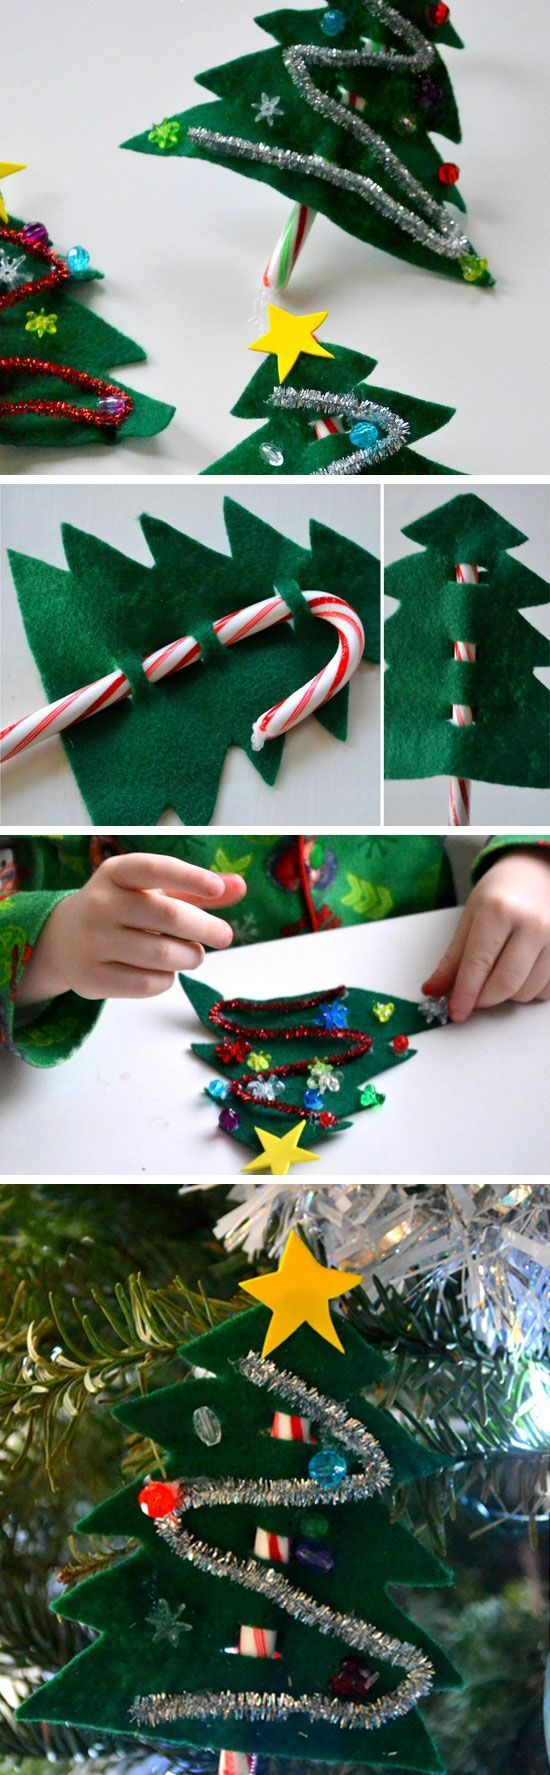 Easy Christmas Craft Ideas For Kids To Make Part - 40: 25+ DIY Christmas Crafts For Kids To Make This Holiday Season! | DIY  Christmas, Candy Canes And Christmas Tree